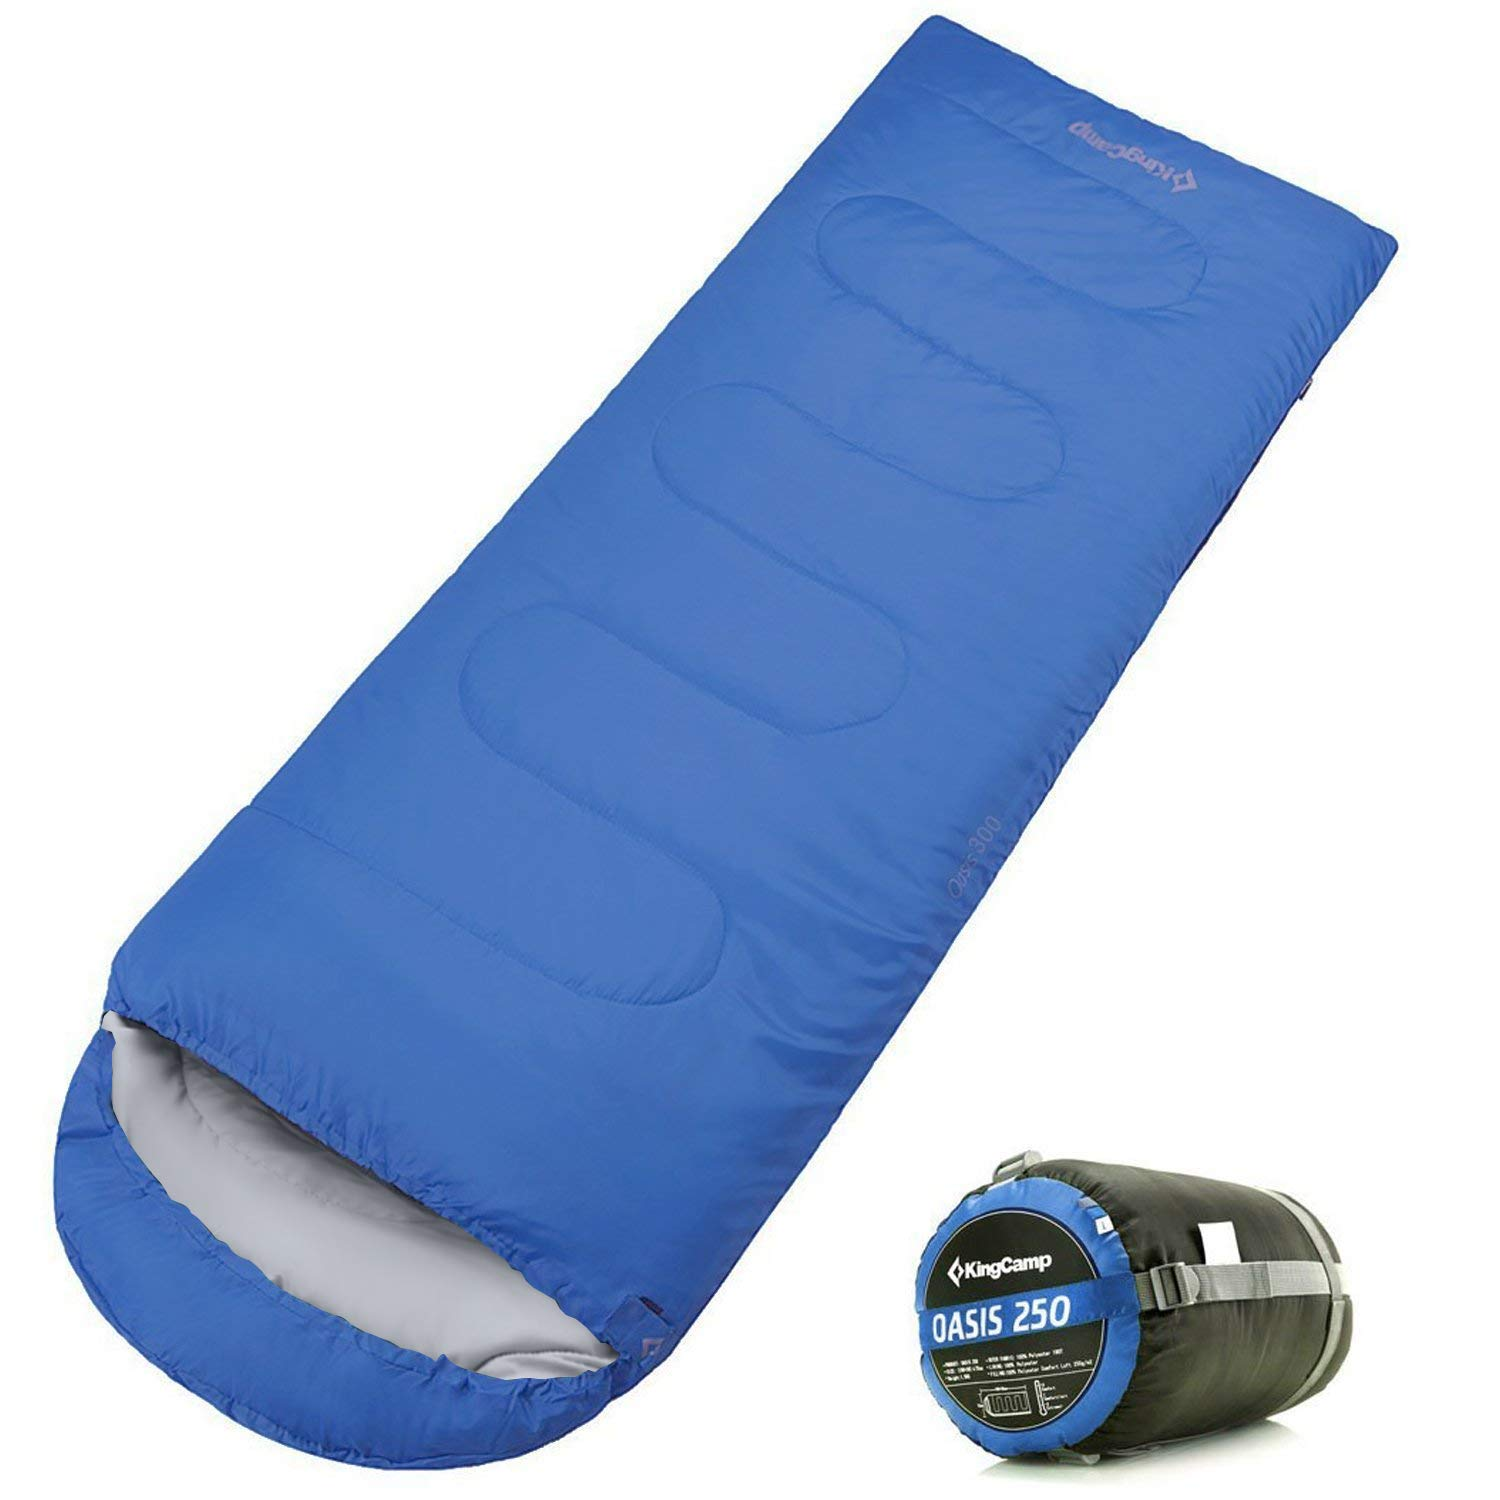 KingCamp Envelope Sleeping Bag 3 Season Lightweight Comfort with Compression Sack Camping Backpack Temp Rating 26F/-3C by KingCamp